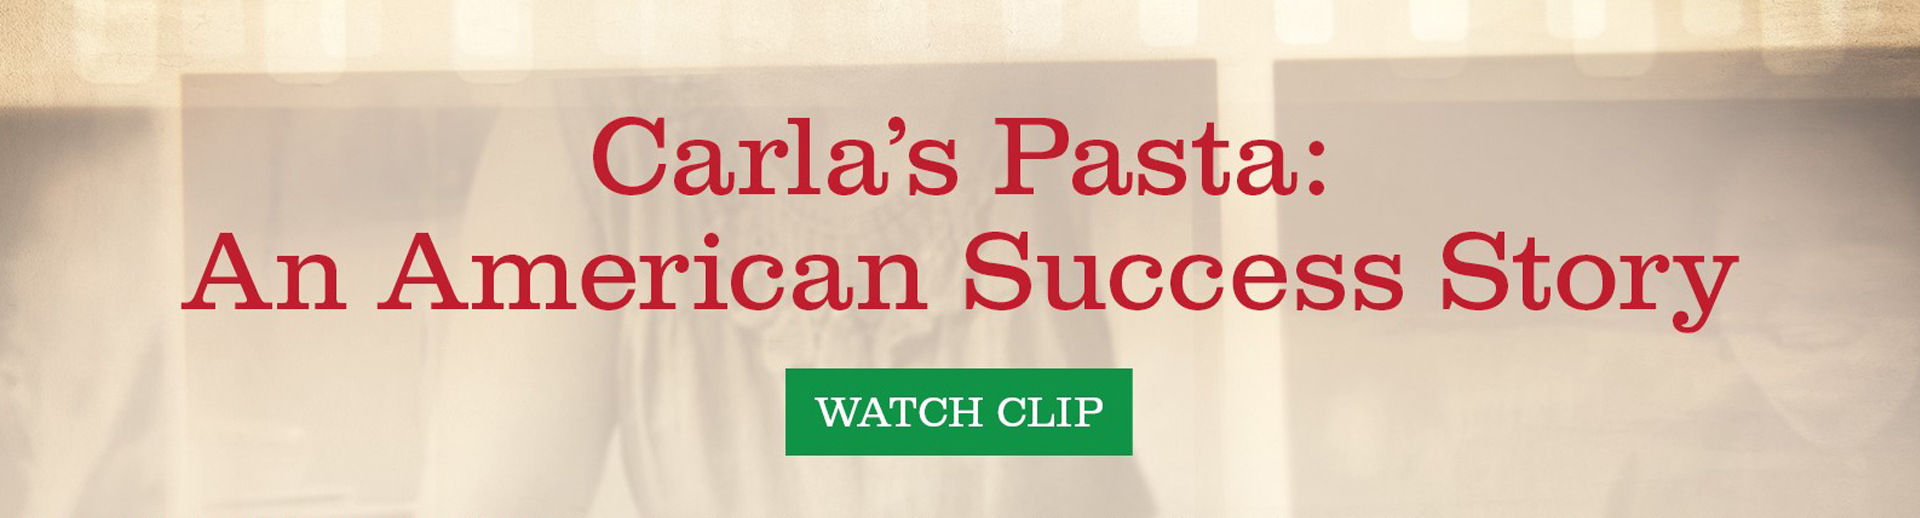 Carla's Pasta Featured on CPTV Documentaries